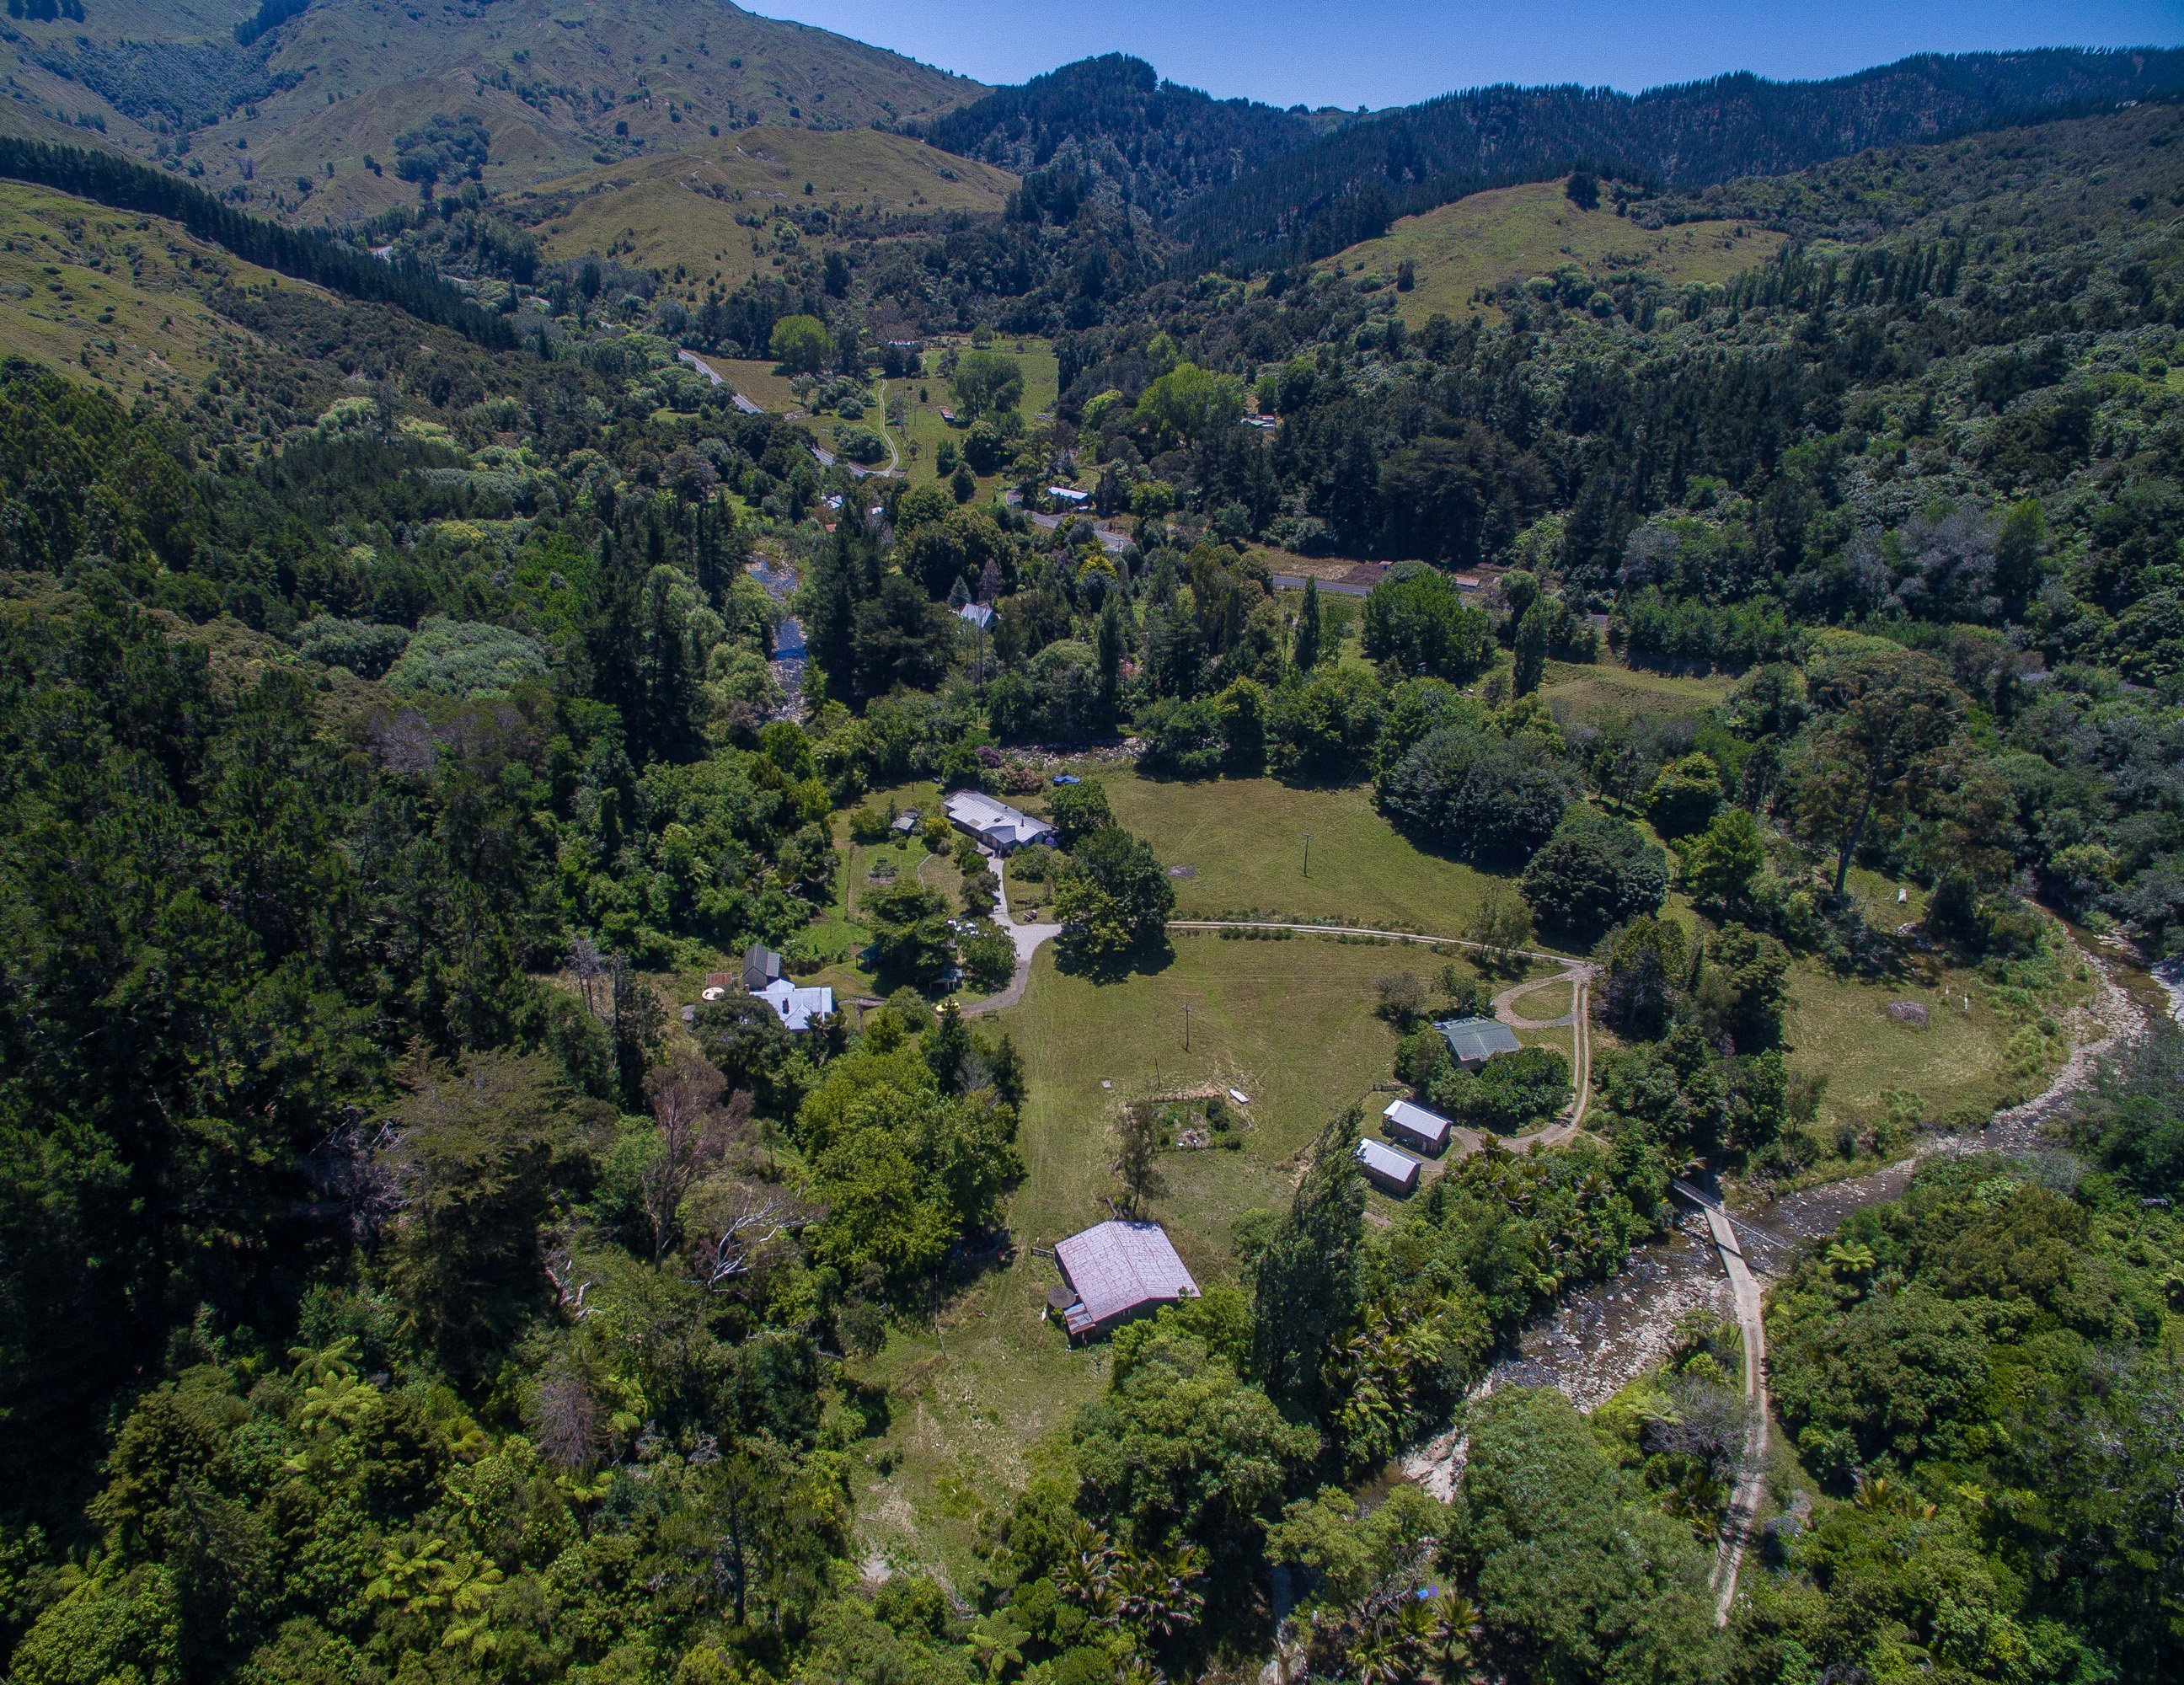 Morere Hot Springs Lodge aerial view